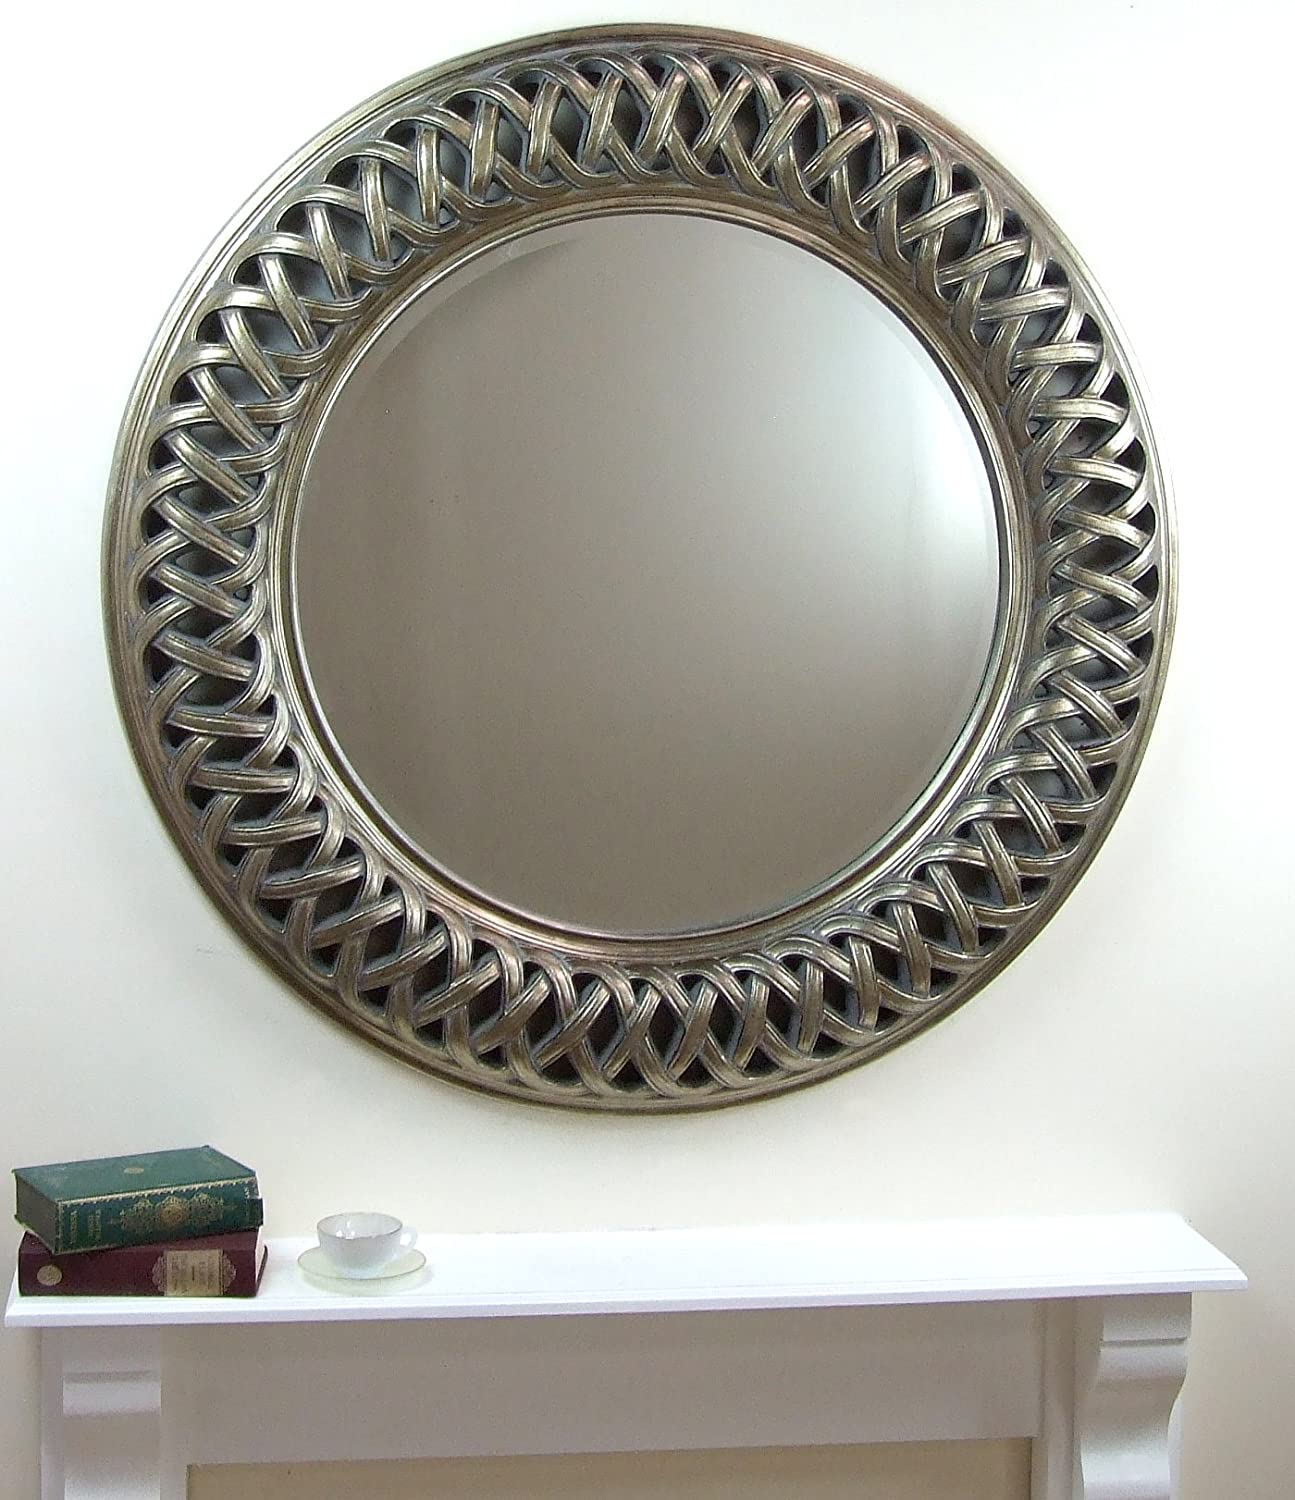 Large round mirror large round mirror cool ornate for Large white mirrors for sale